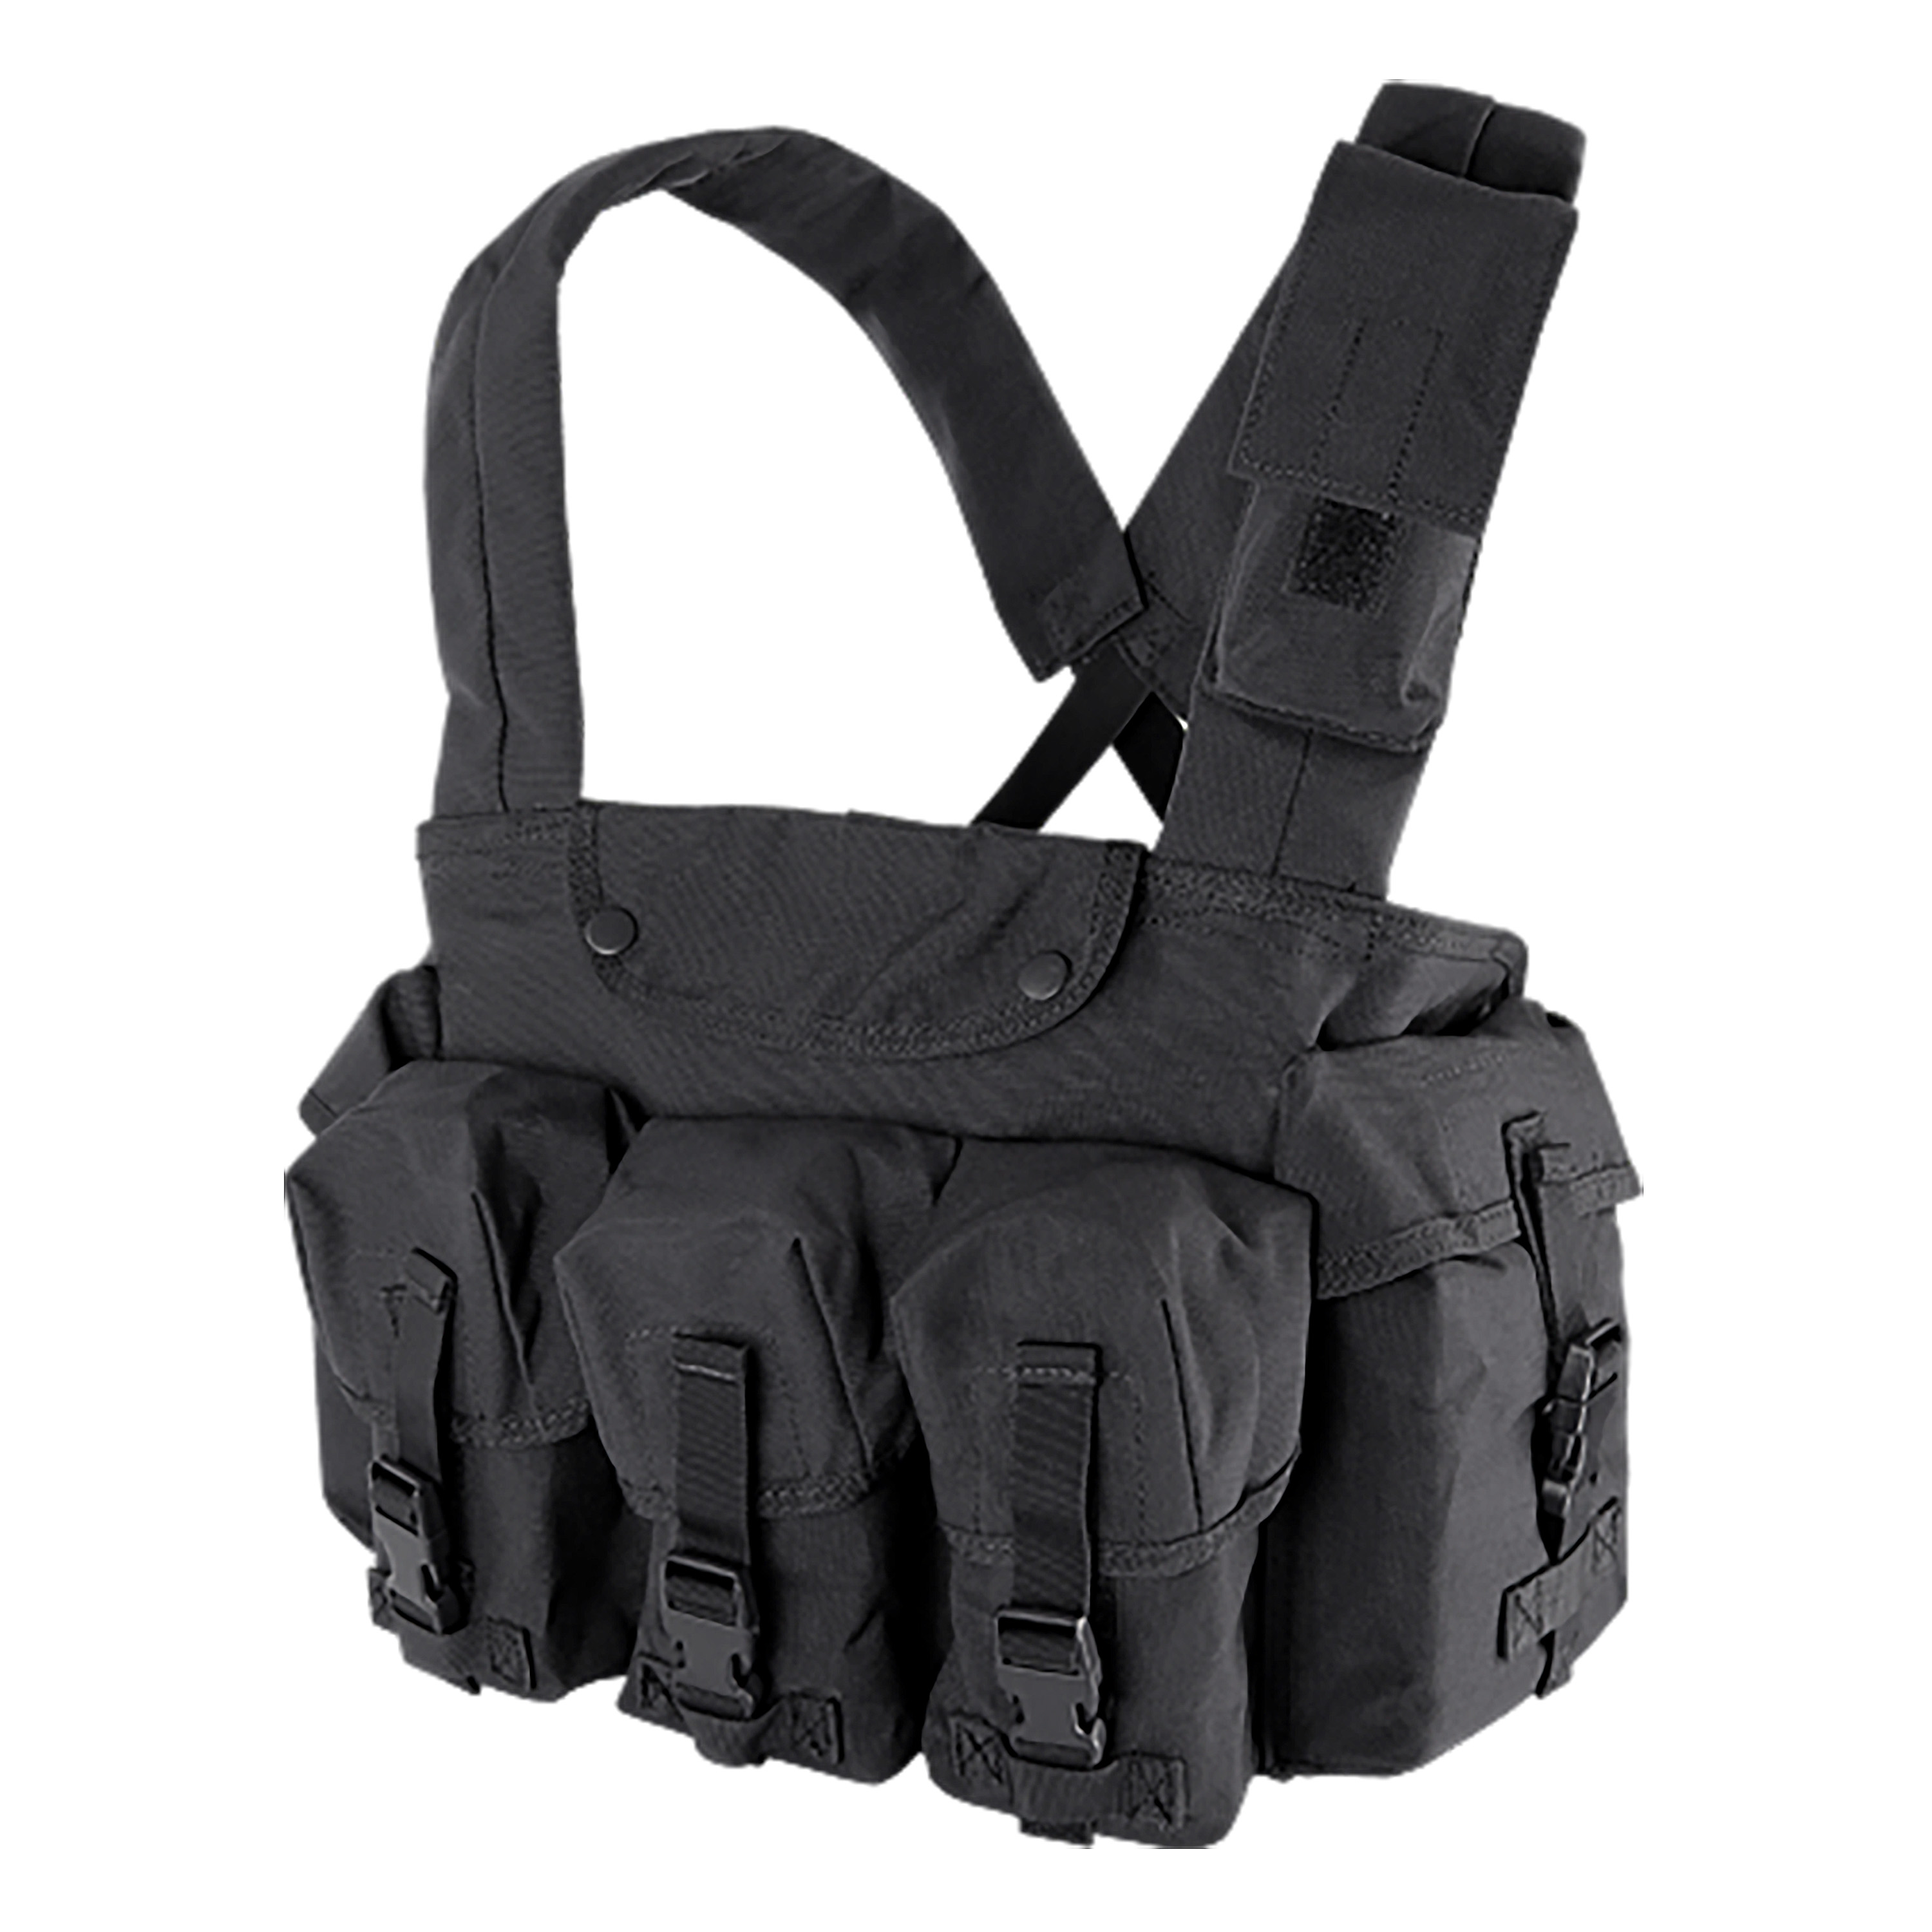 Condor 7 Pocket Chest Rig schwarz